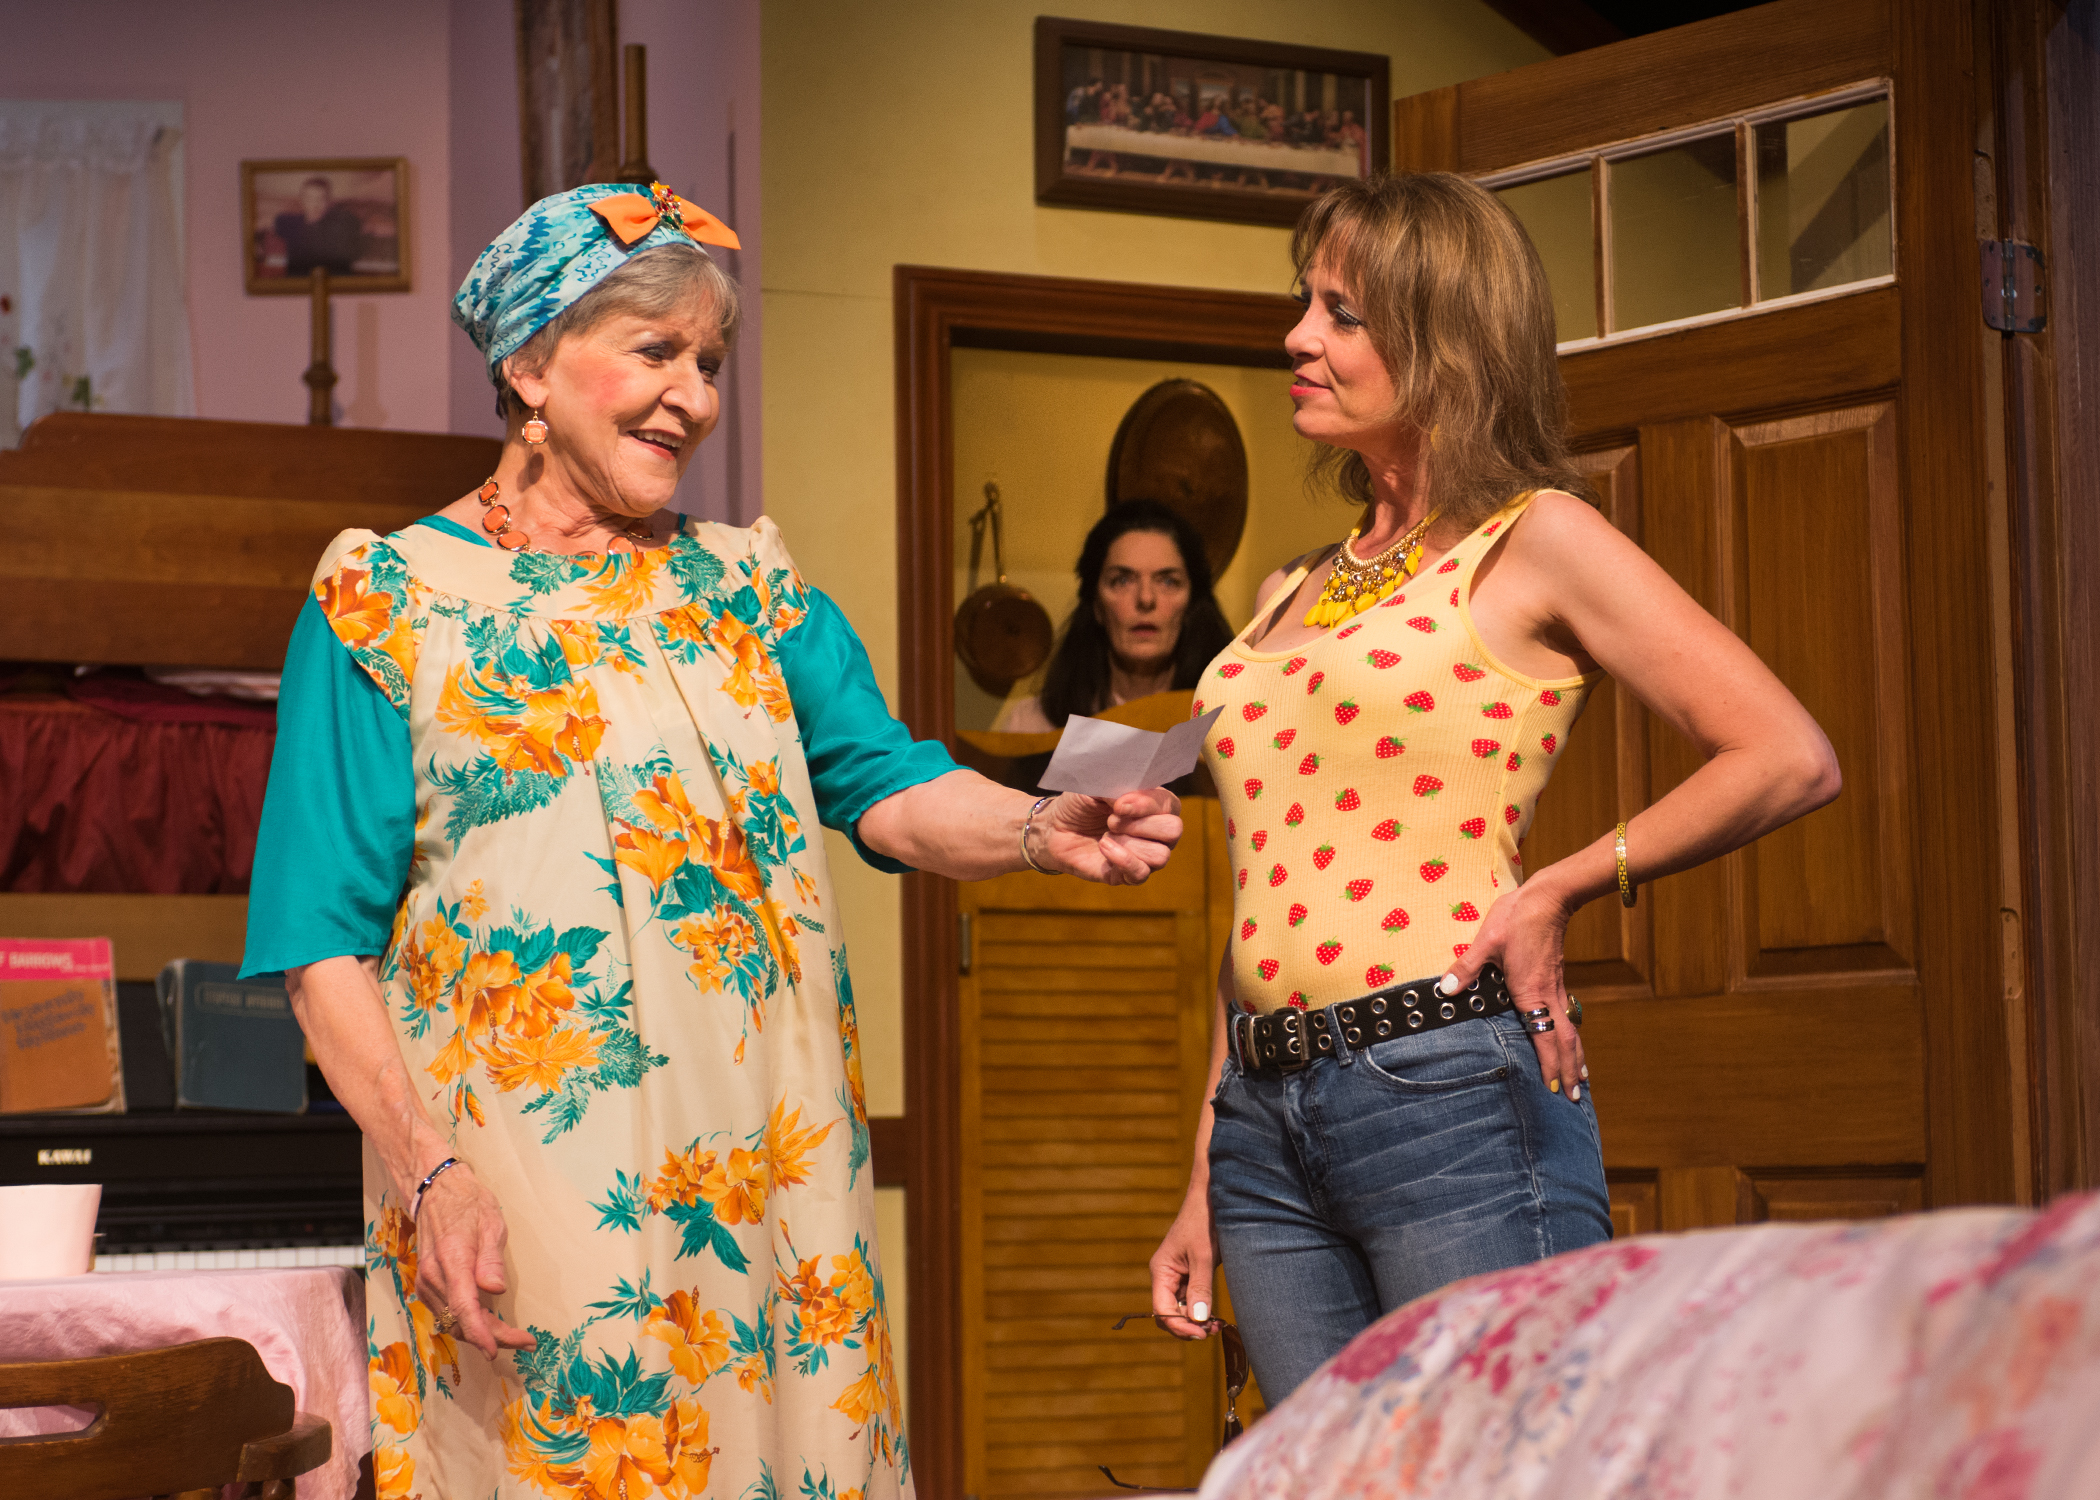 Pictured: Ditty Blaylock (Christine Macomber) celebrates the return of her prodigal daught Bethany (Amy Meyers)while her eldest daughter Rachel (Cheryl Smith) looks on. Photo by Lois Tema.